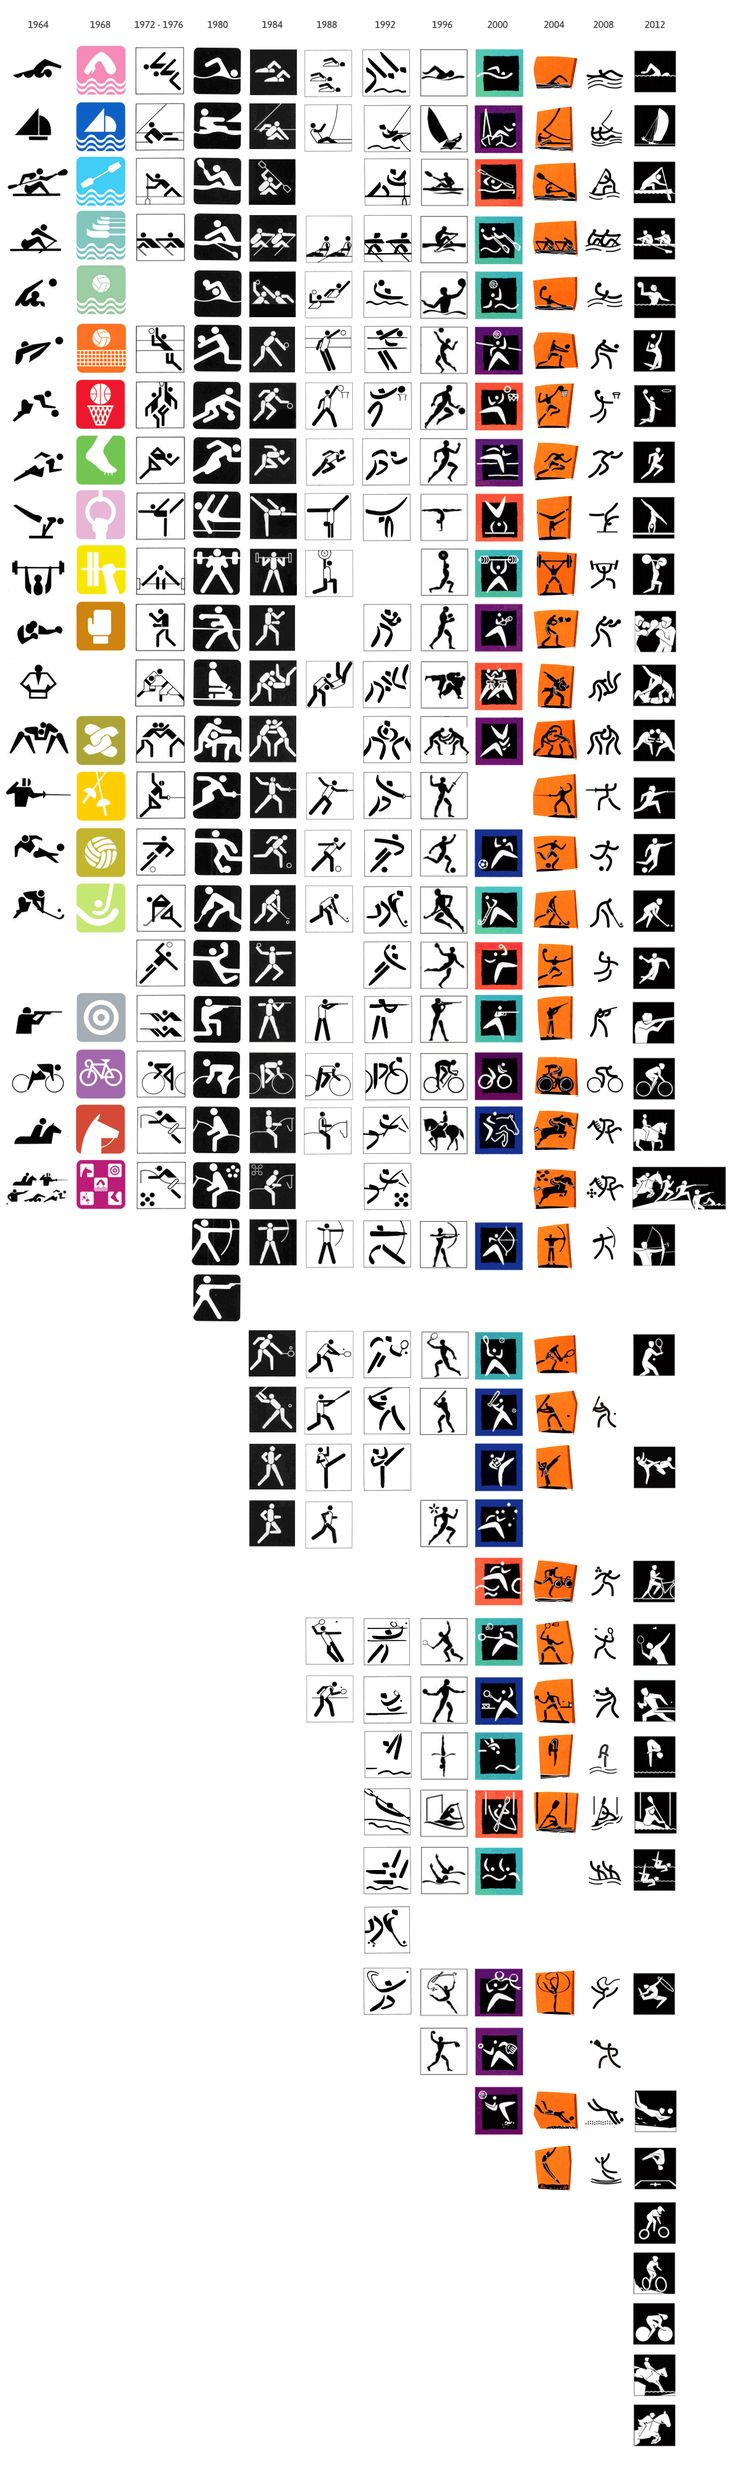 Olympic rings logo rio 2016 olympics logo designed by fred gelli - All Olympic Pictograms Png 1 160 3 889 Pixels Logo Typeimagespictocommunications Designlogosdrawings